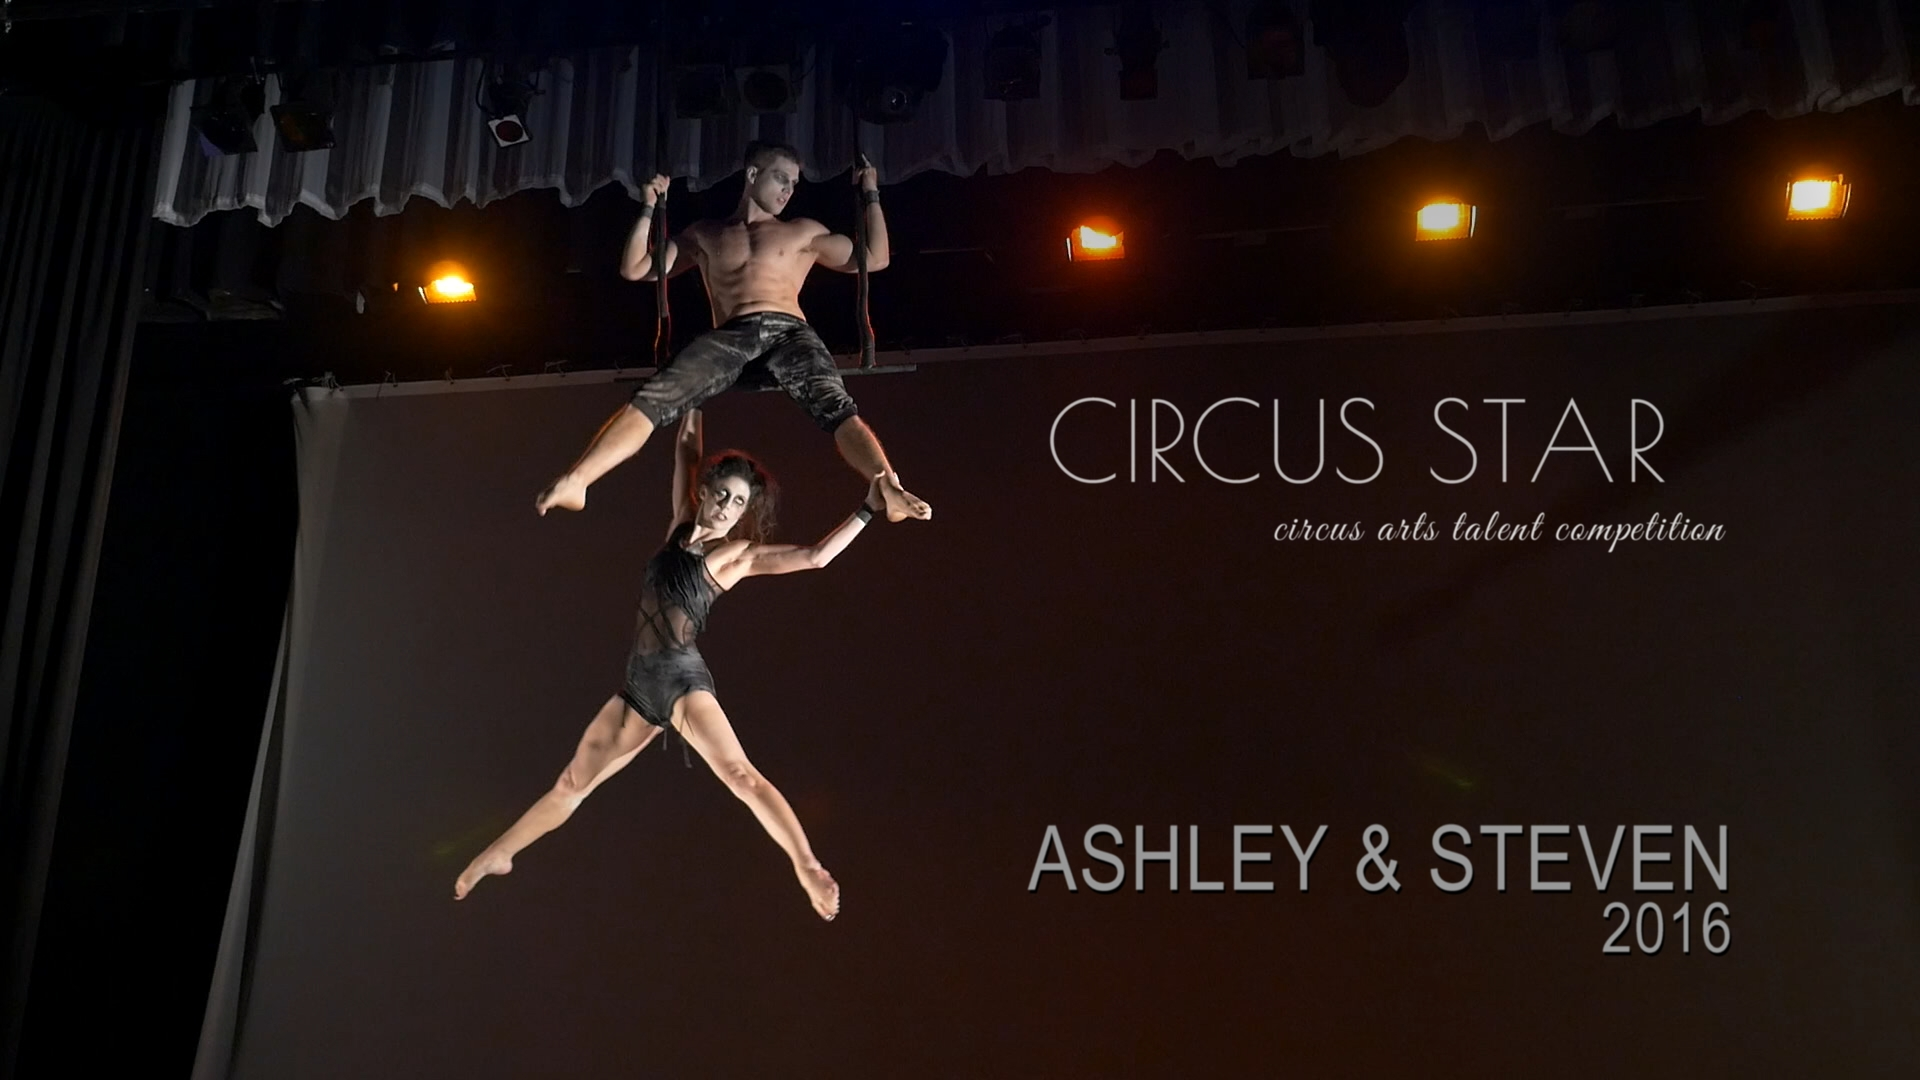 Ashley + Steven, Circus Star USA 2016 performers